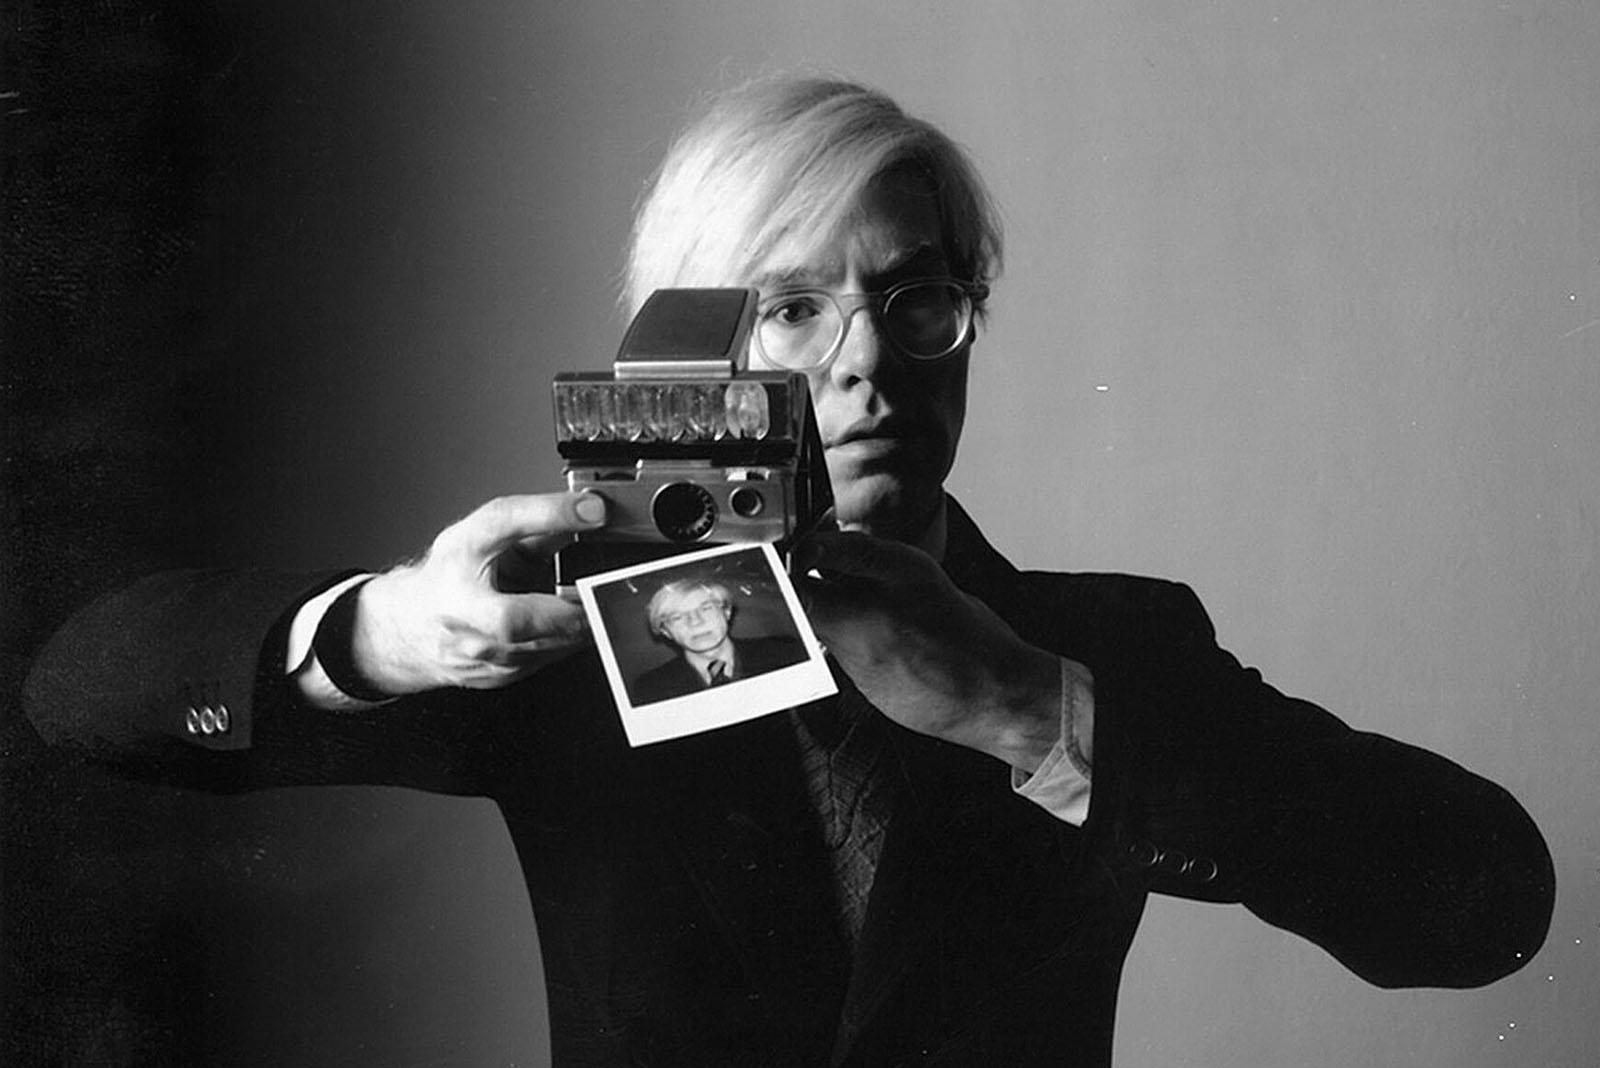 andy_warhols_personally_owned_used_polaroid_sx-70_land_camera_1974_heritage_auctions_7.jpg